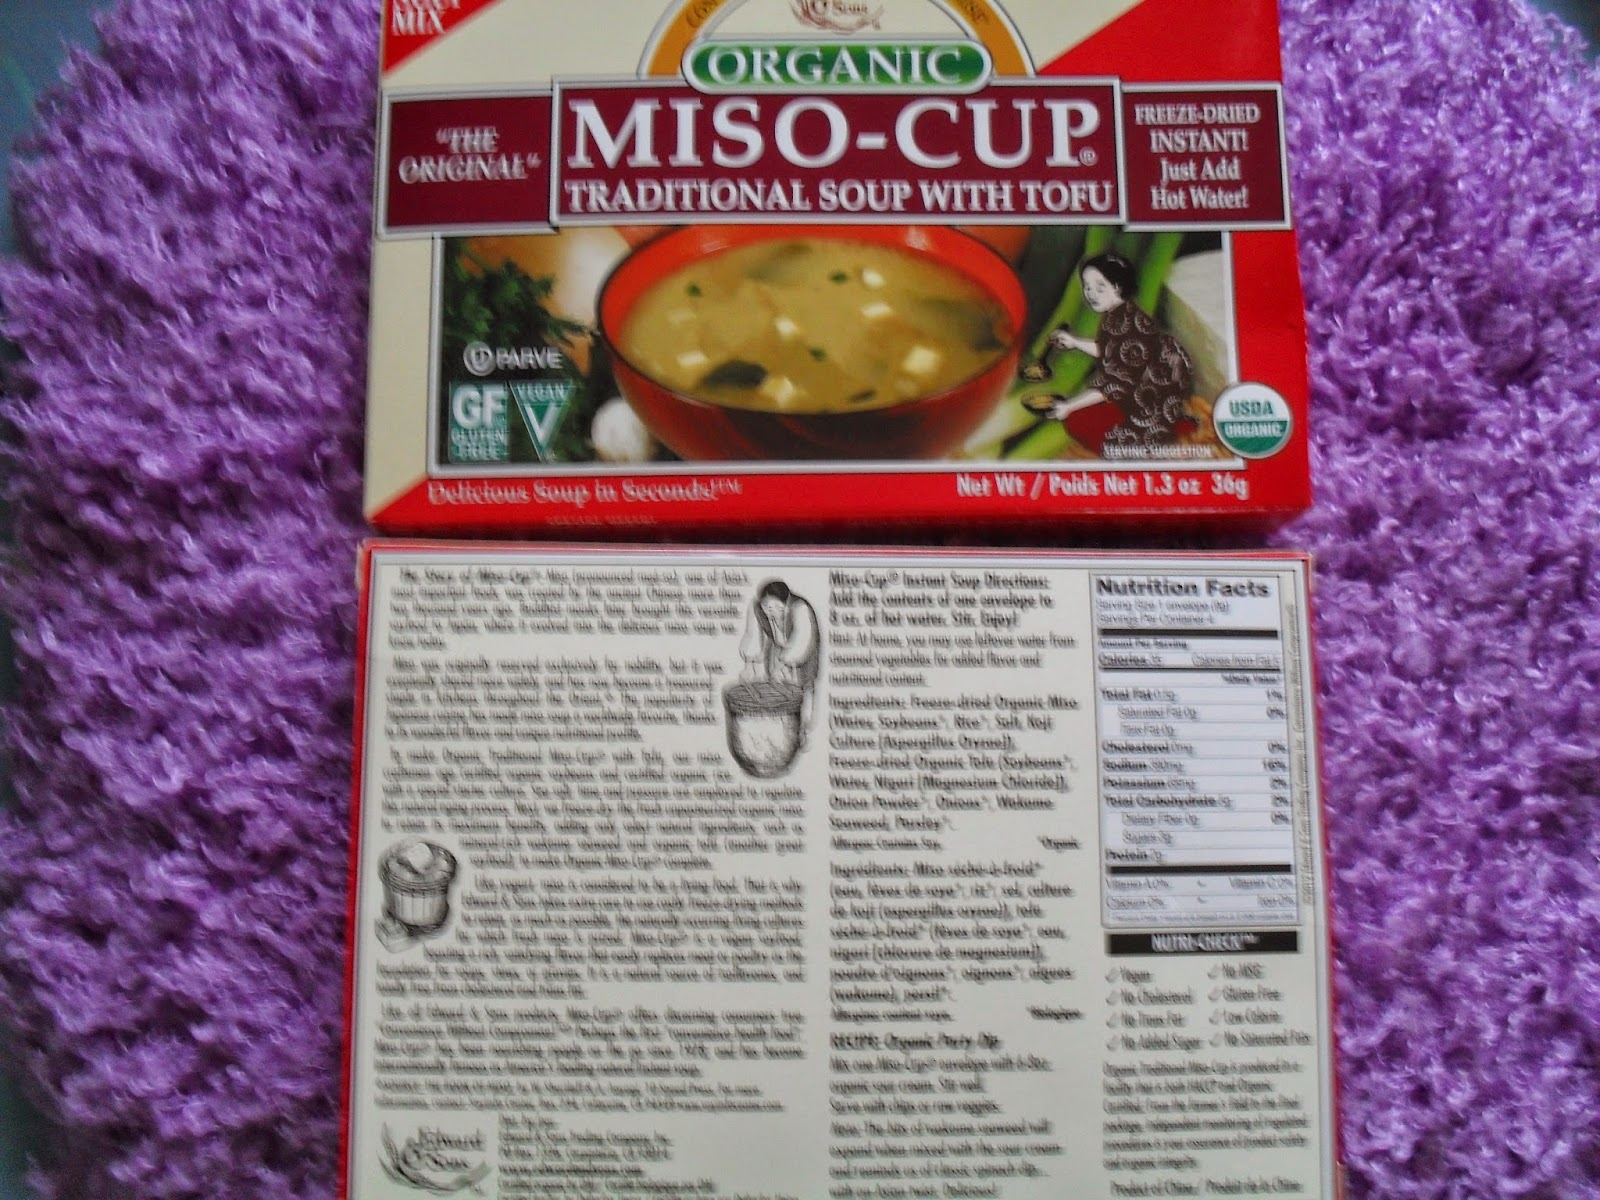 Edward & Sons, Organic Miso-Cup, Natural/Instant